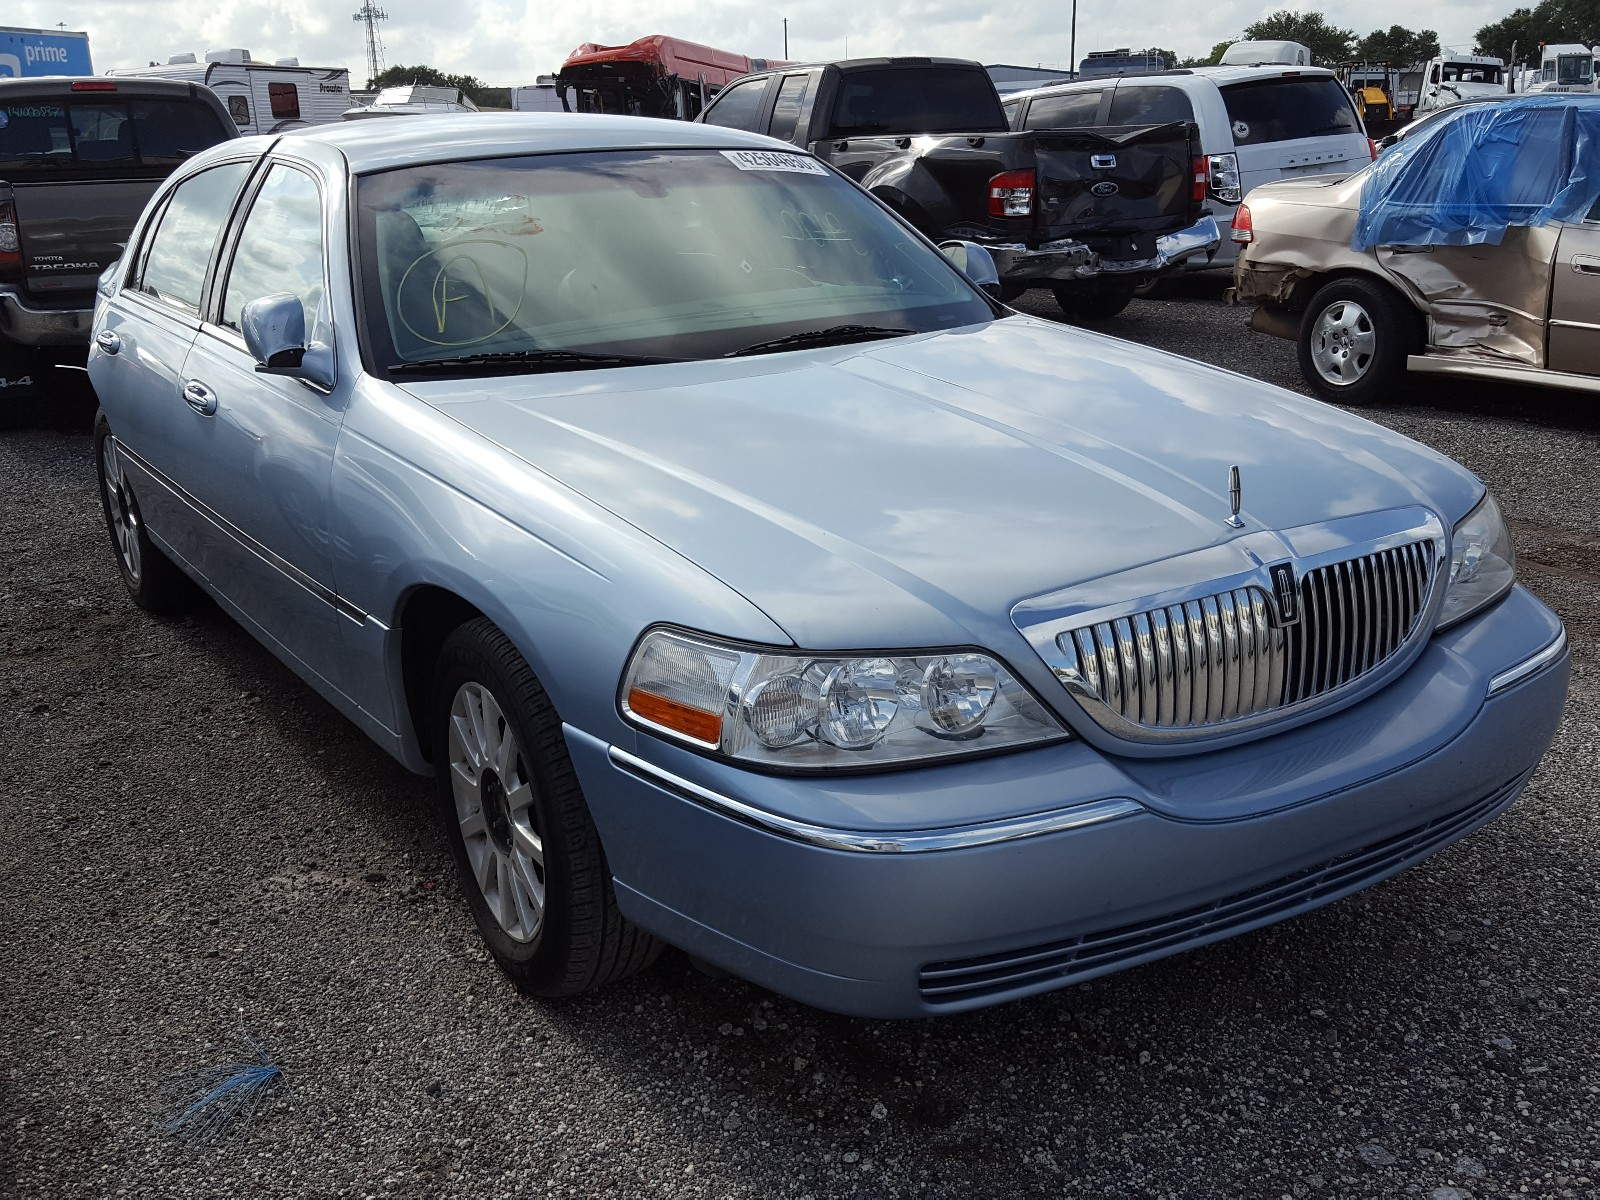 2007 Lincoln Town Car S For Sale At Copart Orlando Fl Lot 42564650 Salvagereseller Com